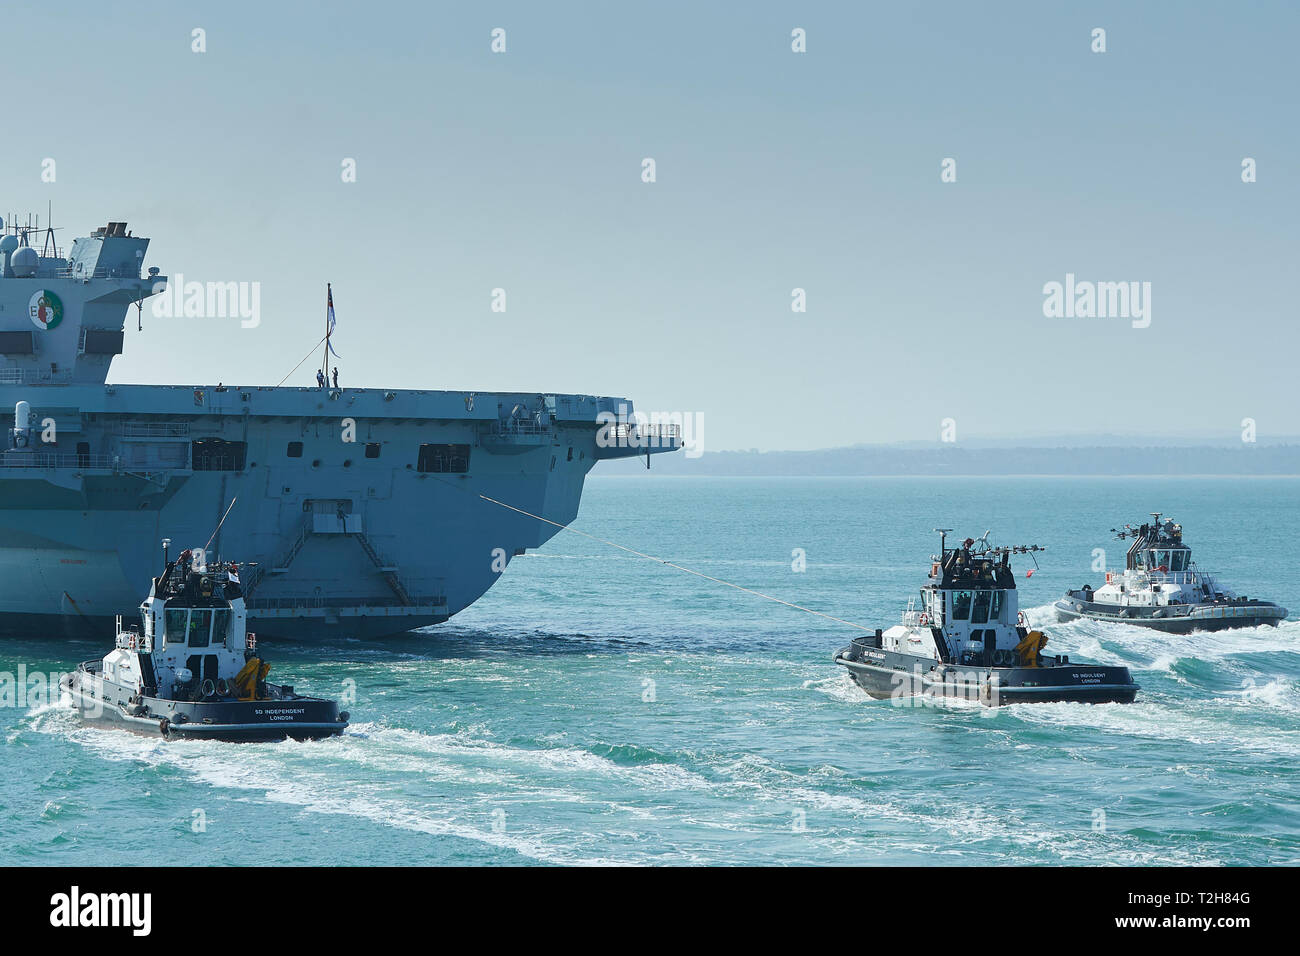 The Royal Navy Aircraft Carrier, HMS QUEEN ELIZABETH, Being Assisted By 3 Tugs At The Stern, As She Departs Portsmouth For Rosyth. 01 April 2019. - Stock Image